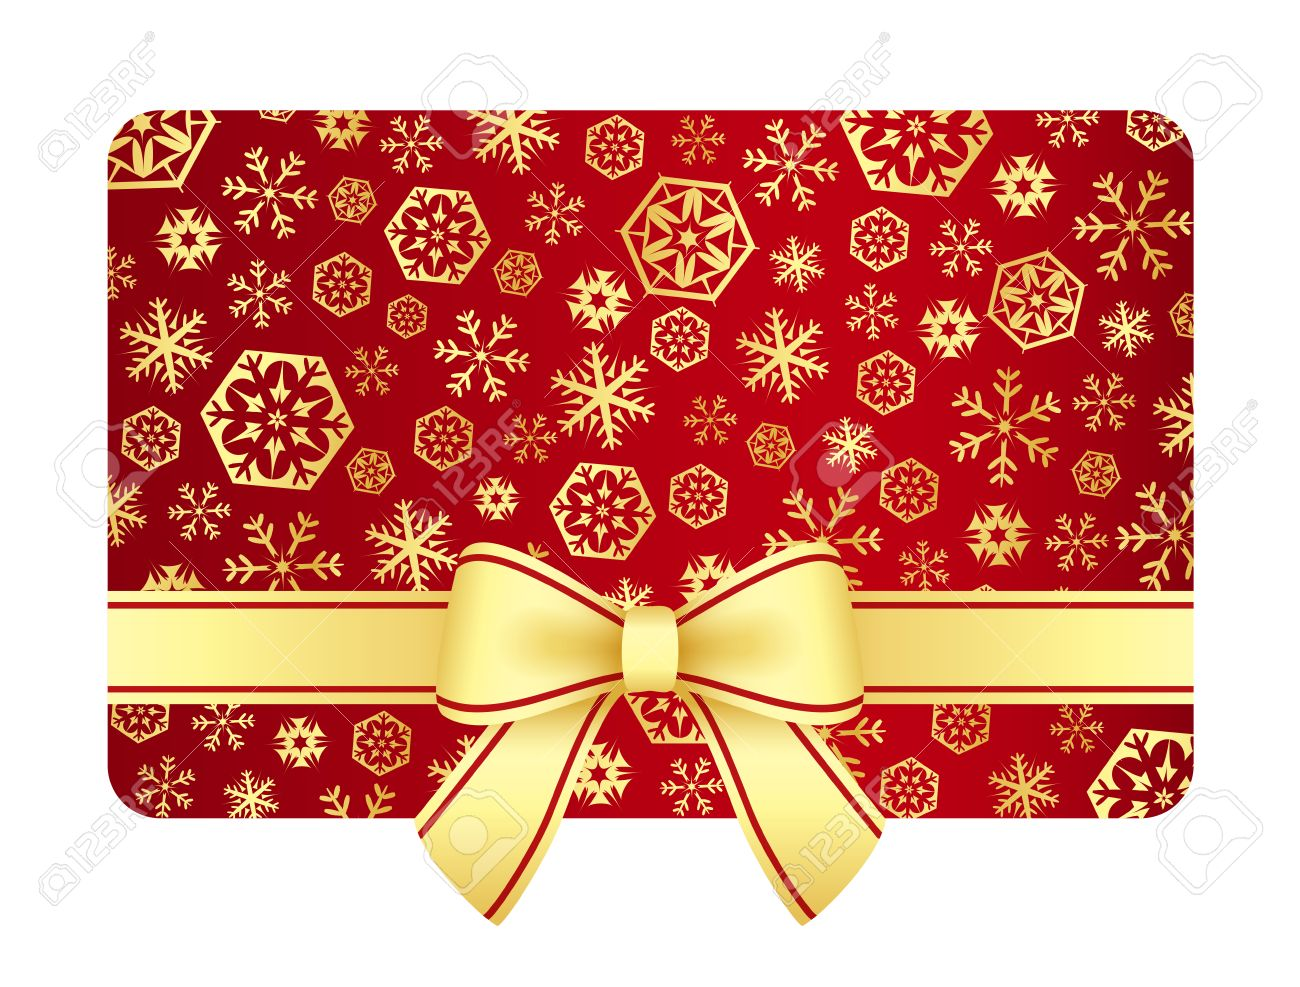 Luxury christmas gift card with golden snowflakes and ribbon luxury christmas gift card with golden snowflakes and ribbon 32230308 negle Images